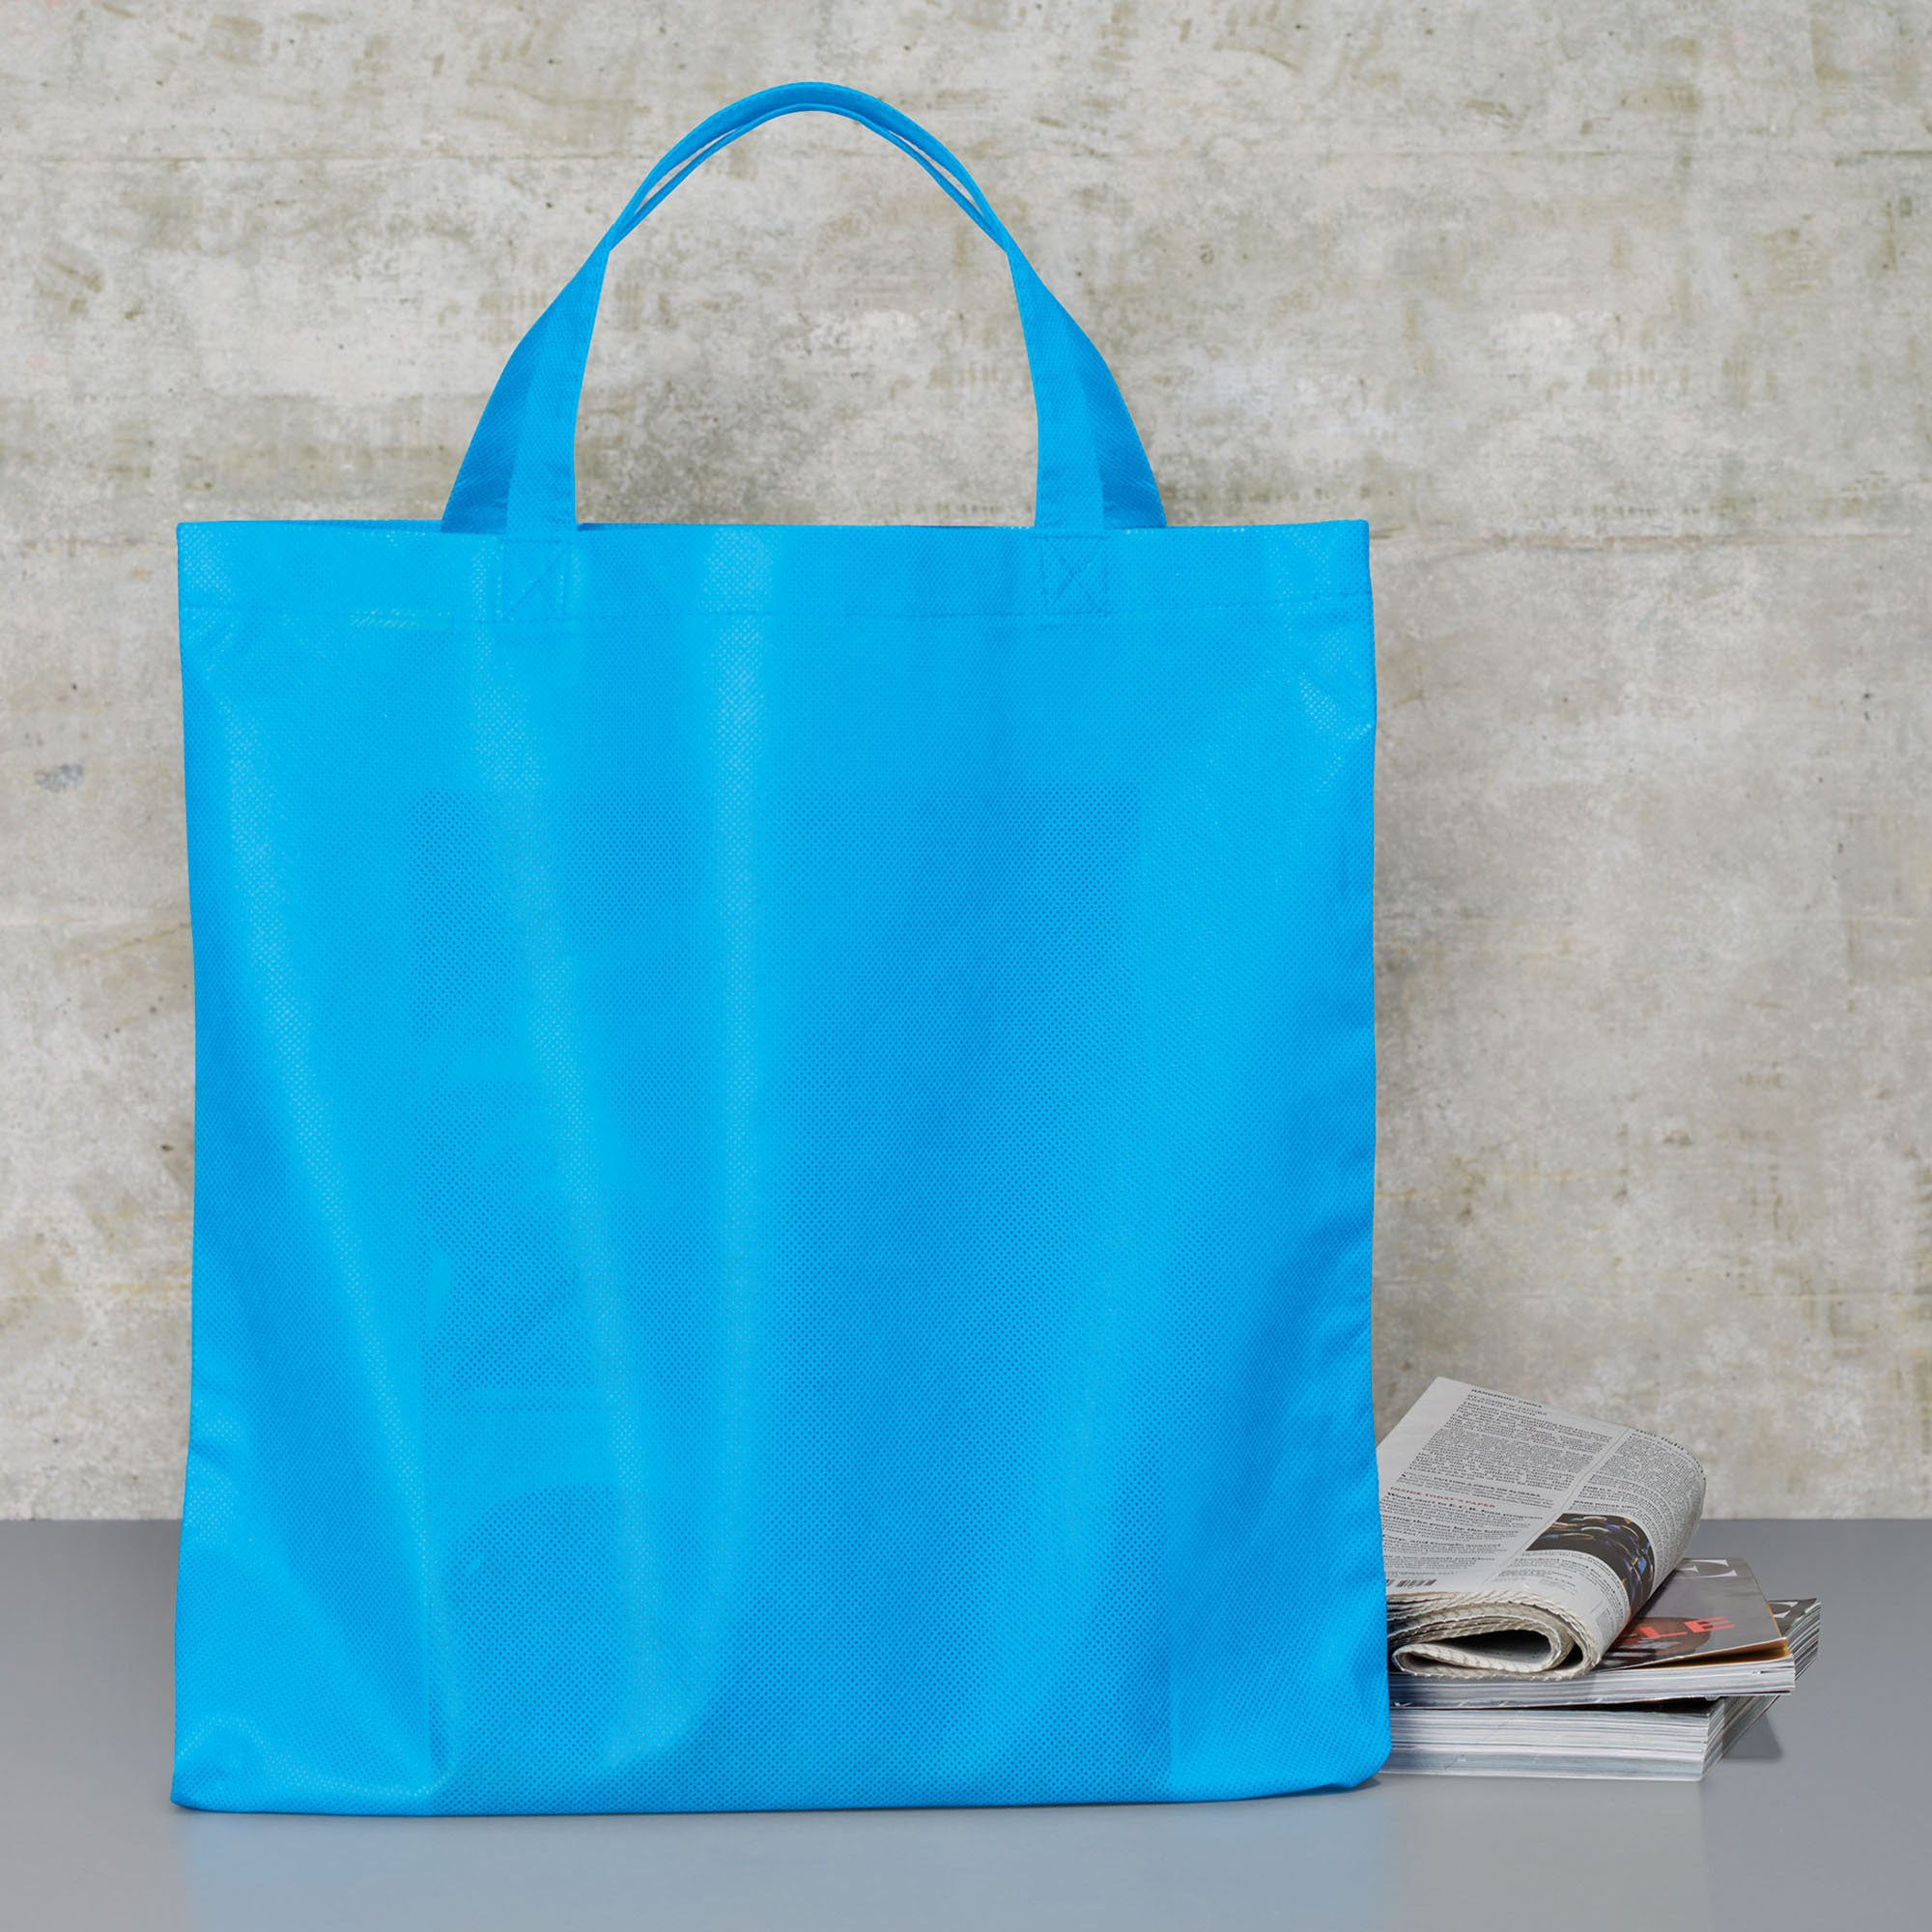 Bags by Jassz Holly tote bag